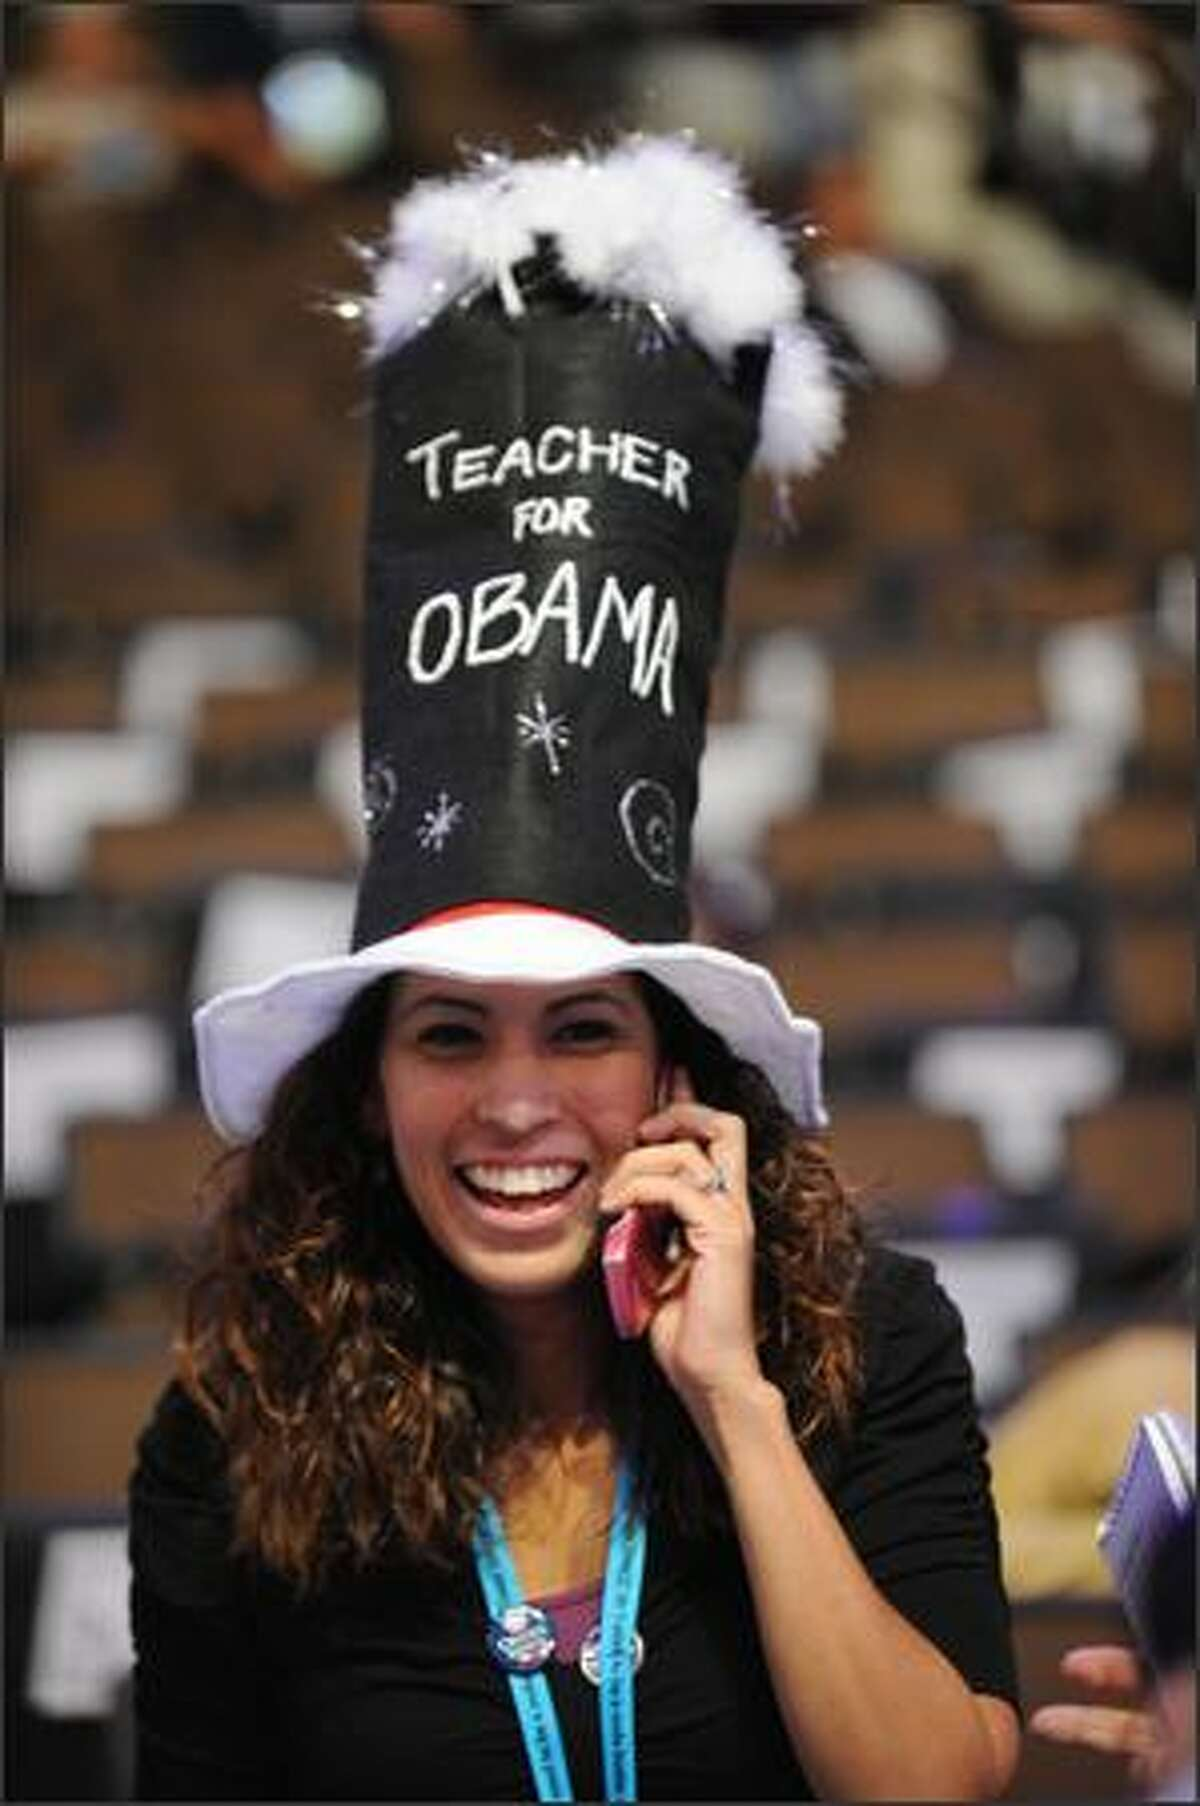 A delegate is seen at the opening of the Democratic National Convention 2008 at the Pepsi Center on Monday in Denver, Colorado.